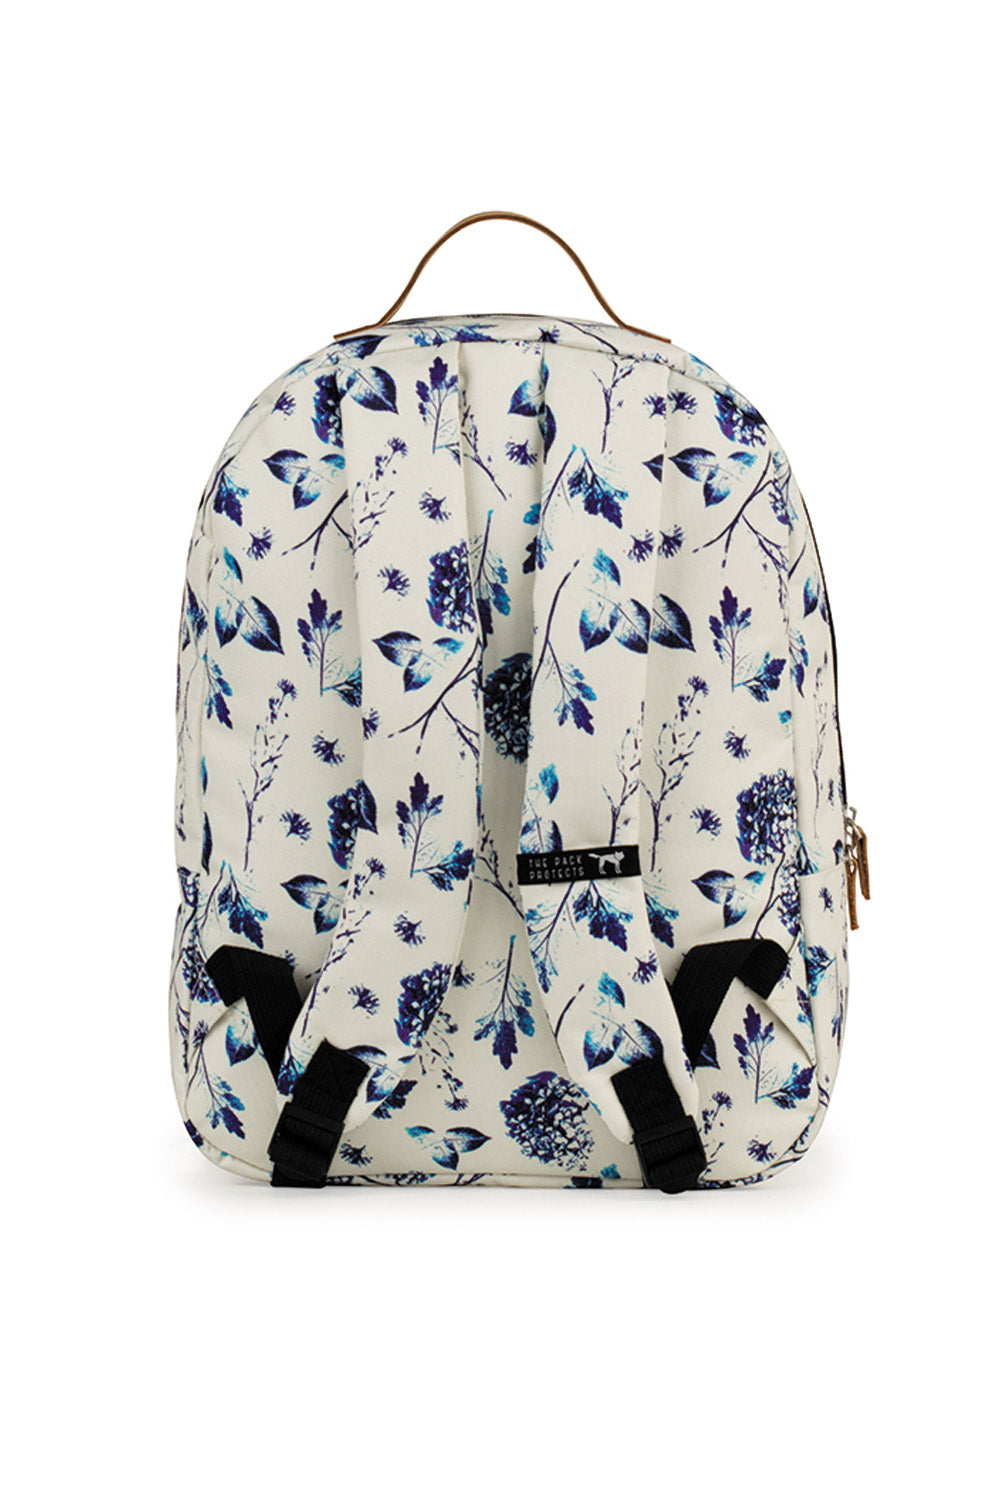 806e378c9cb7 THE PACK SOCIETY - CLASSIC BACKPACK OFF WHITE BLUE FLOWERS - Ozon Boutique